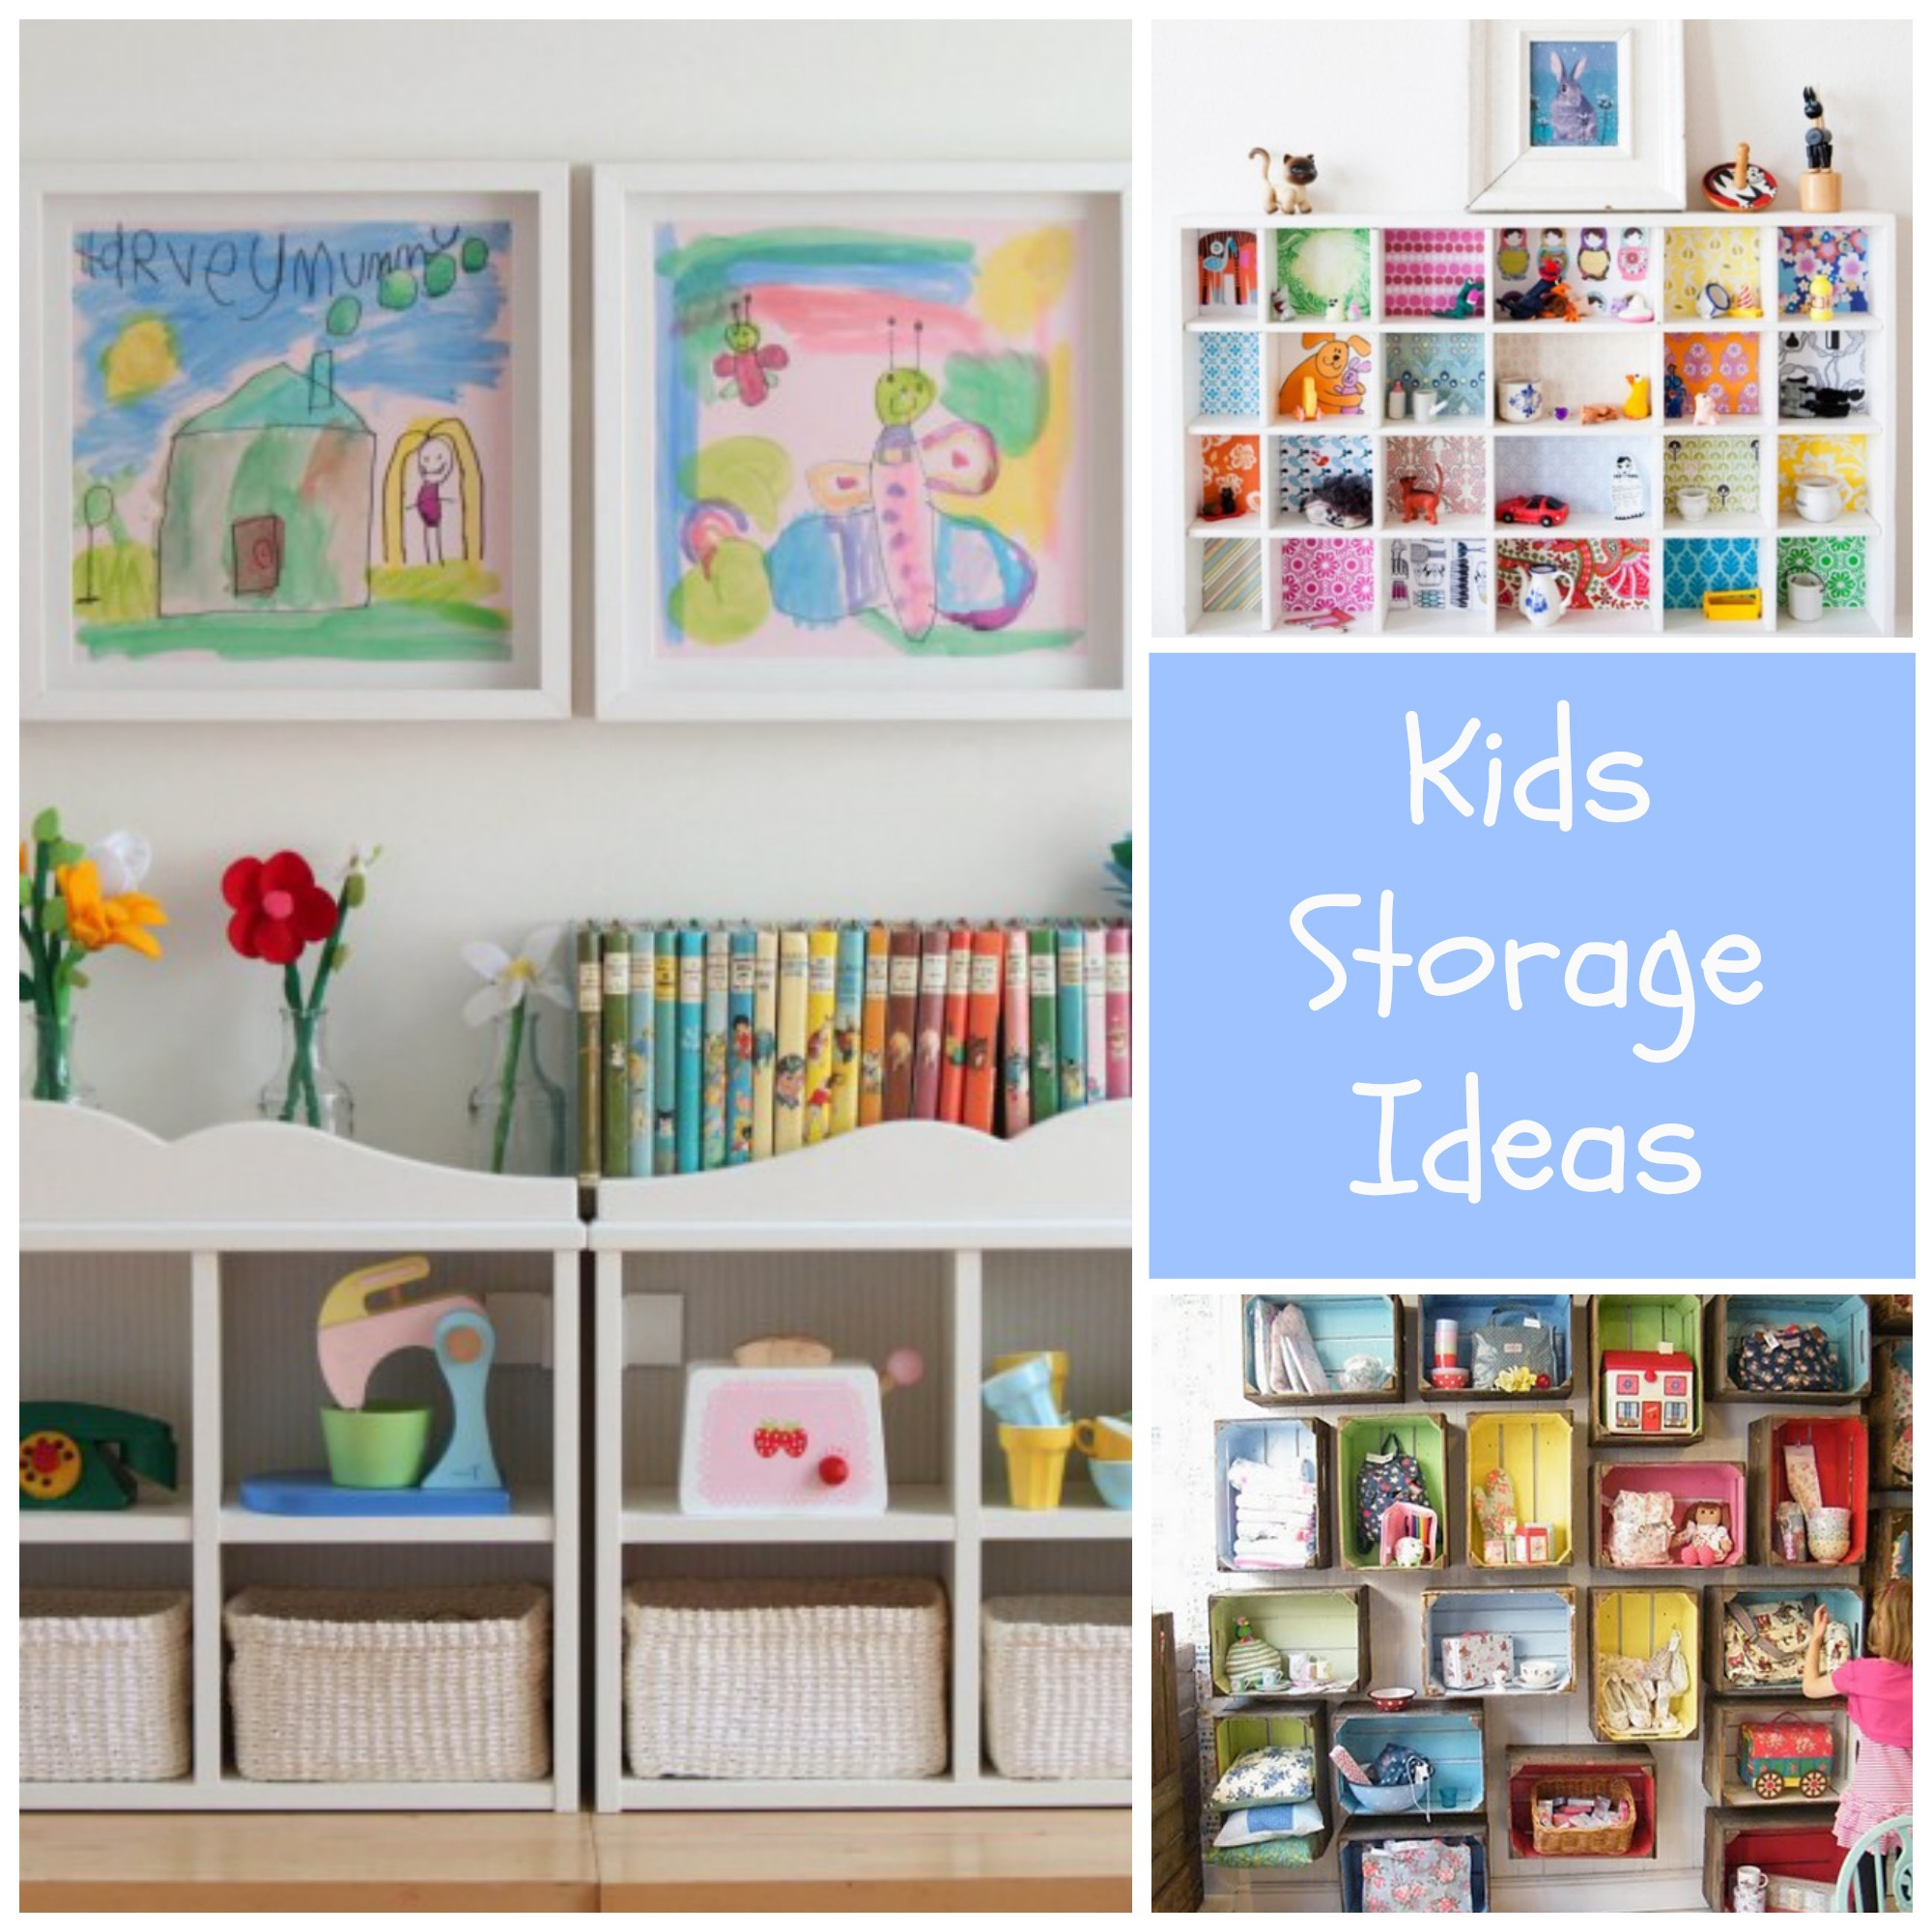 10 Fabulous Organizing Ideas For Kids Rooms storage and organization ideas for kids rooms design dazzle 2021